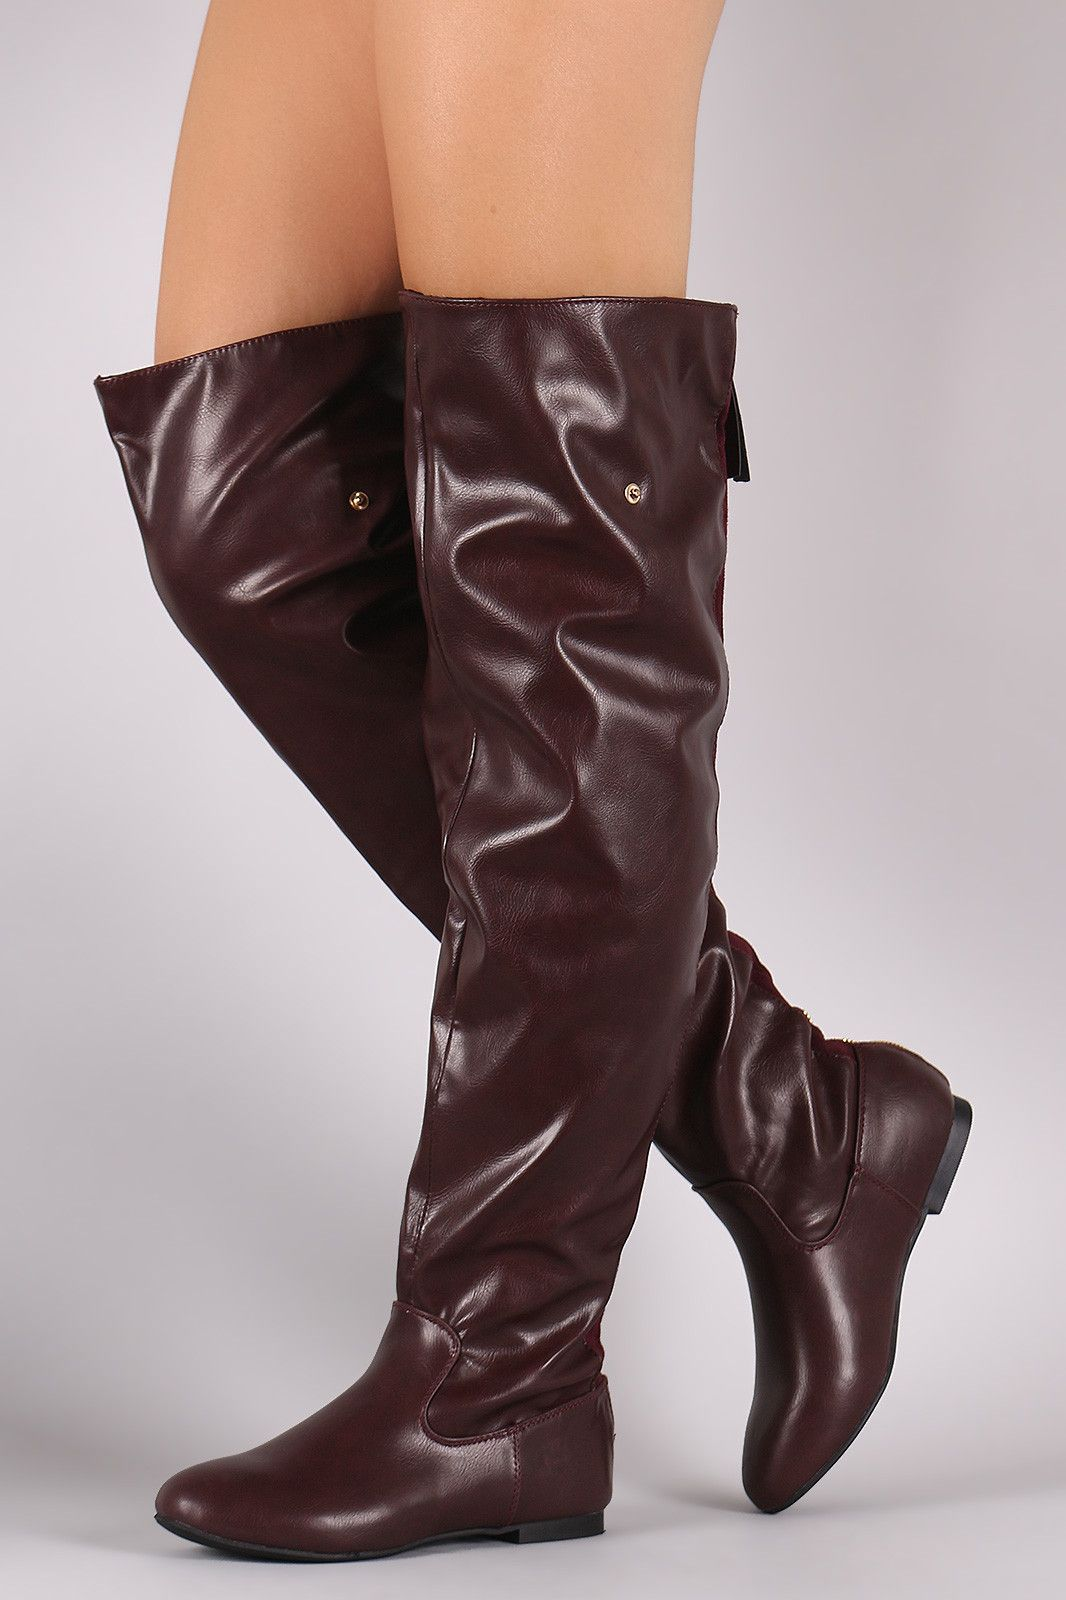 """These  over the knee boots ,feature a slouchy silhouette with a full adjustable back zipper. Designed with side snap buttons for an optional fold over cuff. Cuff area is vegan suede material. Lightly padded lining.Material: Vegan Leather (man-made)Sole: RubberMeasurement Heel Height: 0.3"""" (approx) 